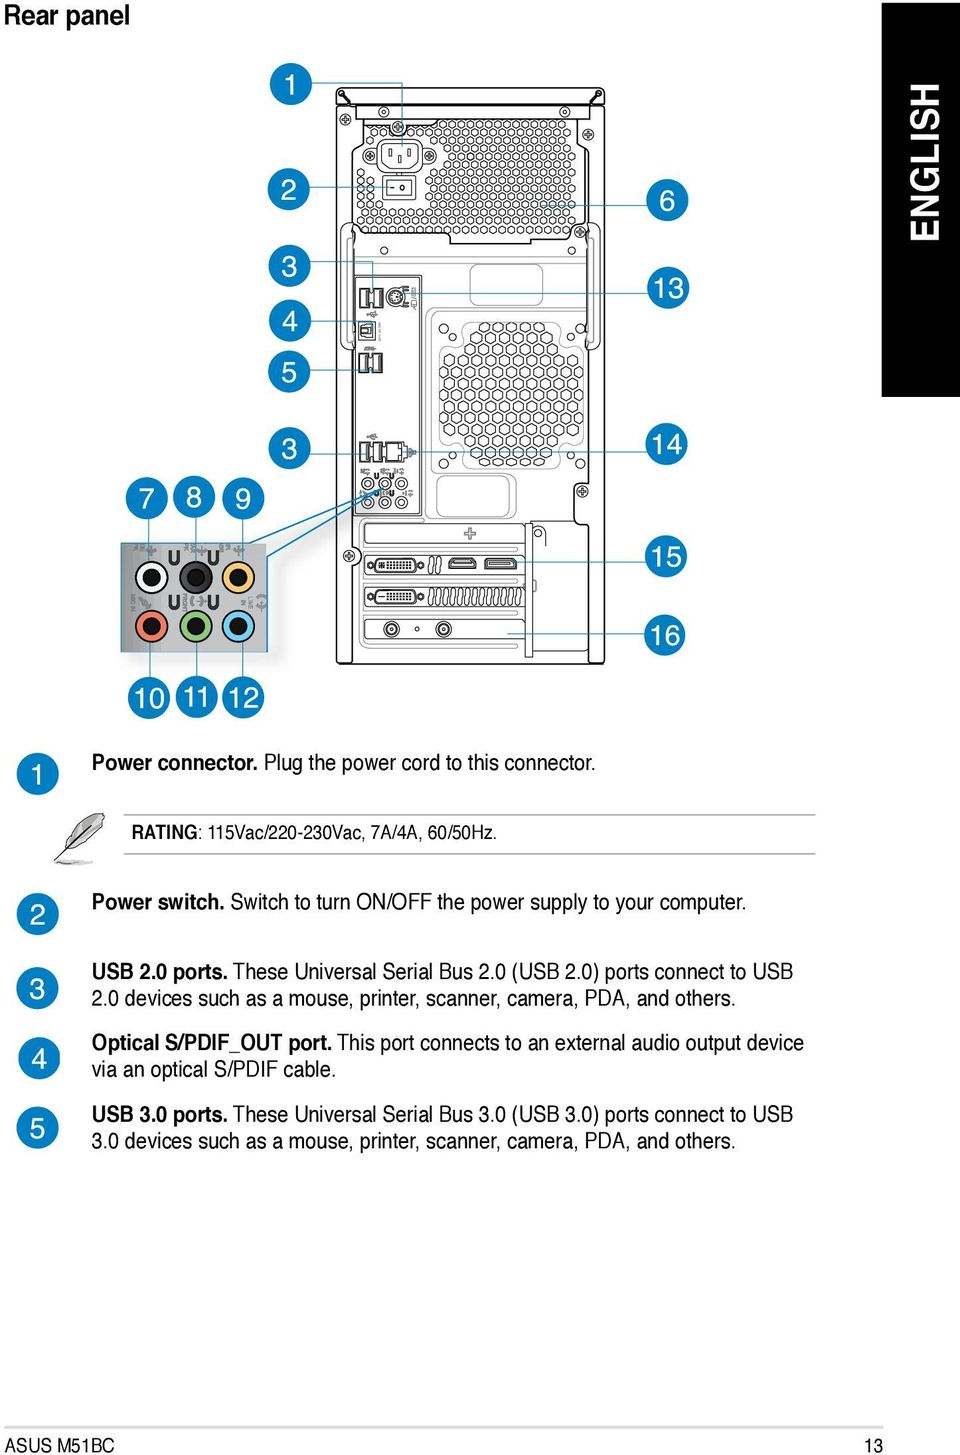 Asus Desktop Pc M51bc User Manual Pdf Usb Cable Wiring Diagram 0 Devices Such As A Mouse Printer Scanner Camera Pda And